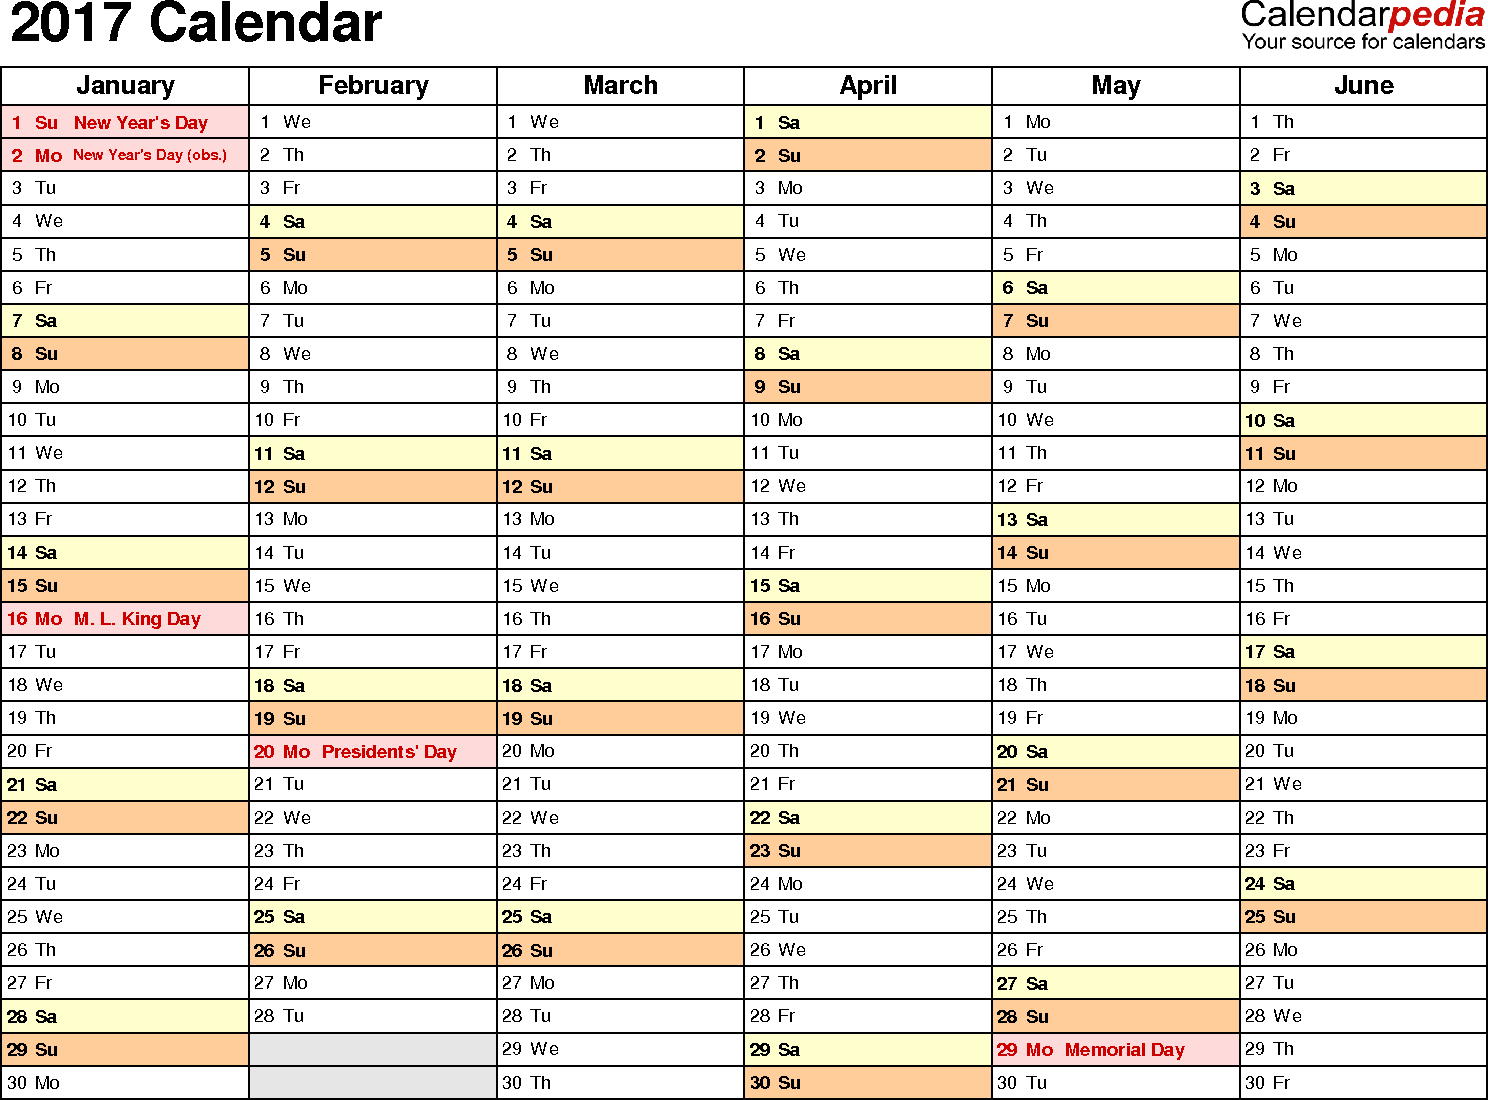 Ediblewildsus  Nice  Calendar  Download  Free Printable Excel Templates Xls With Glamorous Template   Calendar For Excel Months Horizontally  Pages Landscape Orientation With Awesome Excel Repeat Formula Also How To Unlock Excel Password In Addition Mean Variance Optimization Excel And Excel Certification Practice Test As Well As Isna In Excel Additionally Ssrs Export To Excel From Calendarpediacom With Ediblewildsus  Glamorous  Calendar  Download  Free Printable Excel Templates Xls With Awesome Template   Calendar For Excel Months Horizontally  Pages Landscape Orientation And Nice Excel Repeat Formula Also How To Unlock Excel Password In Addition Mean Variance Optimization Excel From Calendarpediacom